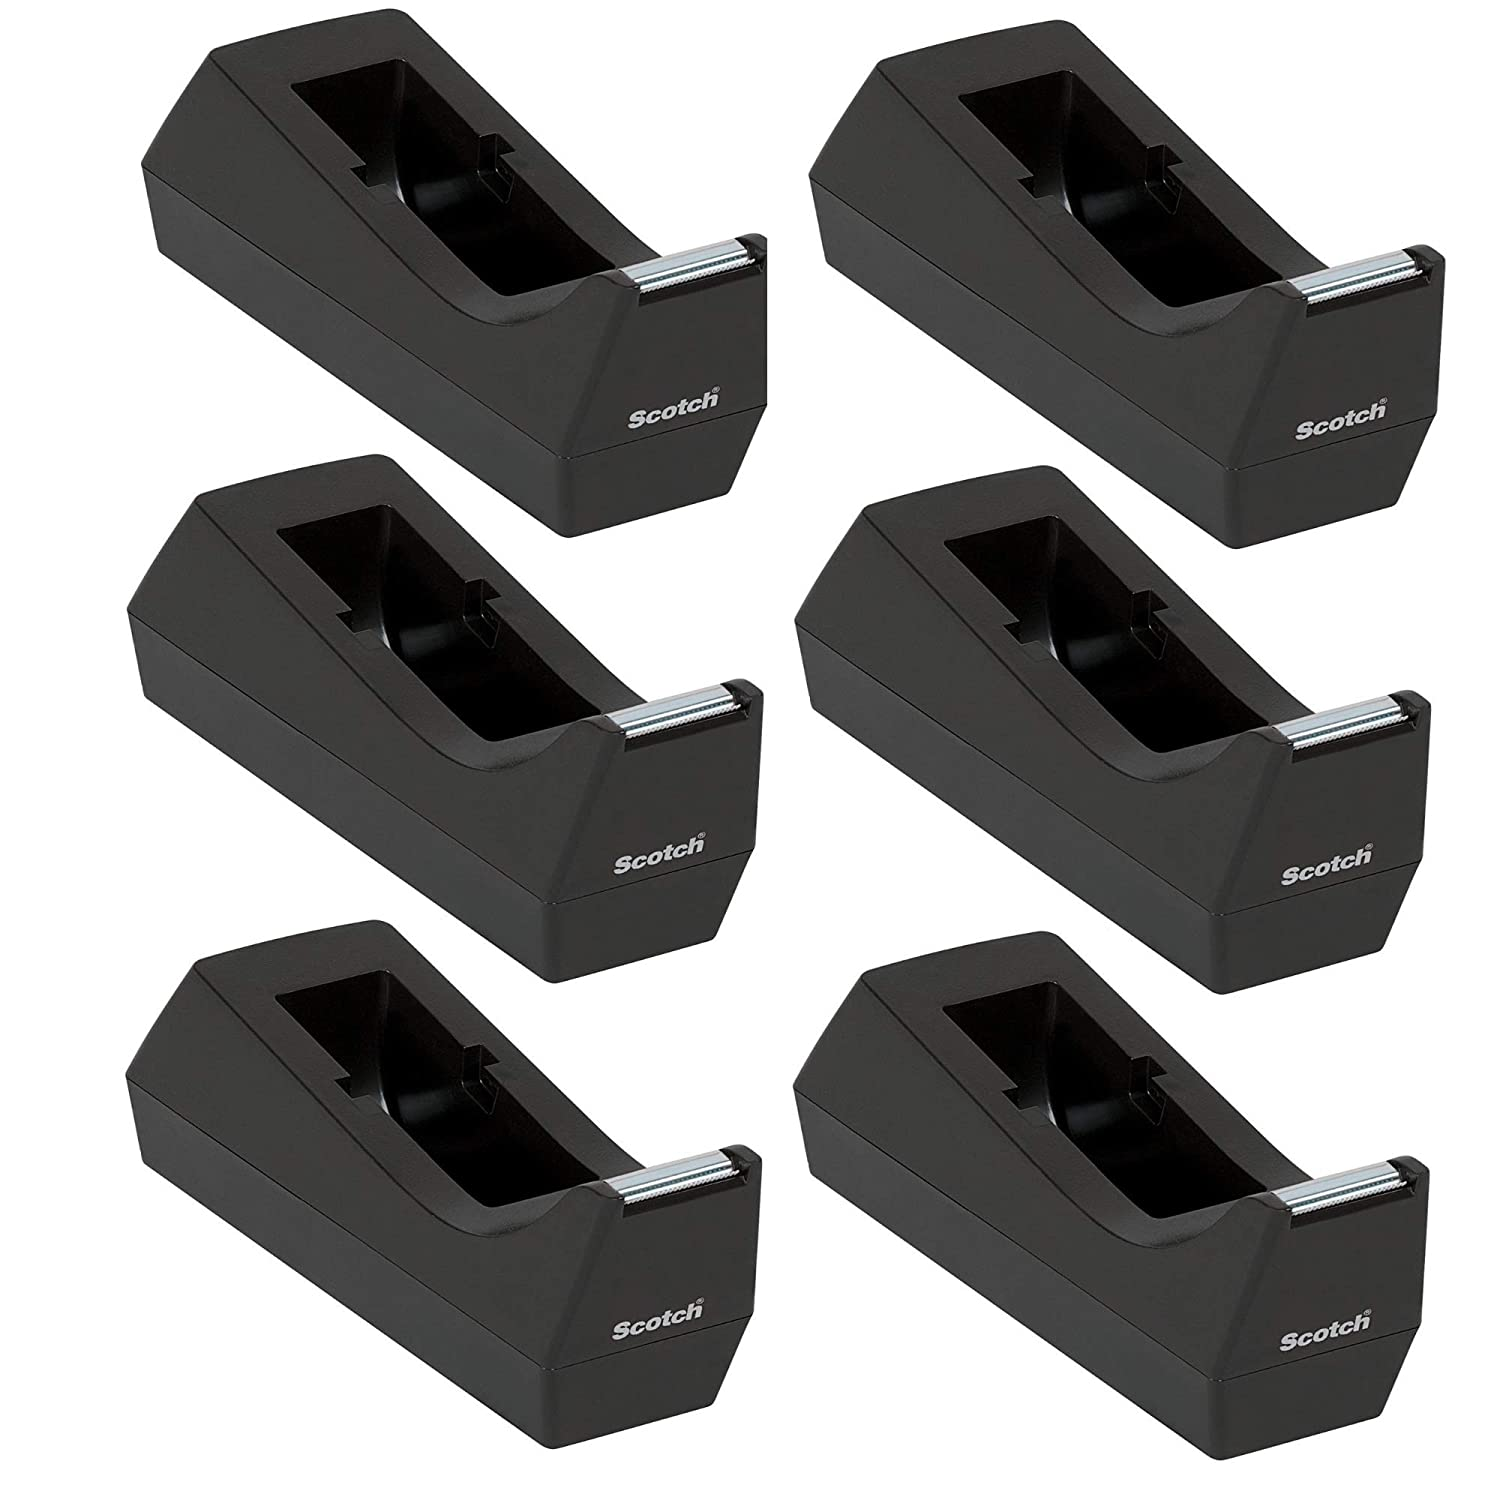 Scotch Desk Tape Dispenser, 1in. Core, Black, 6 Pack